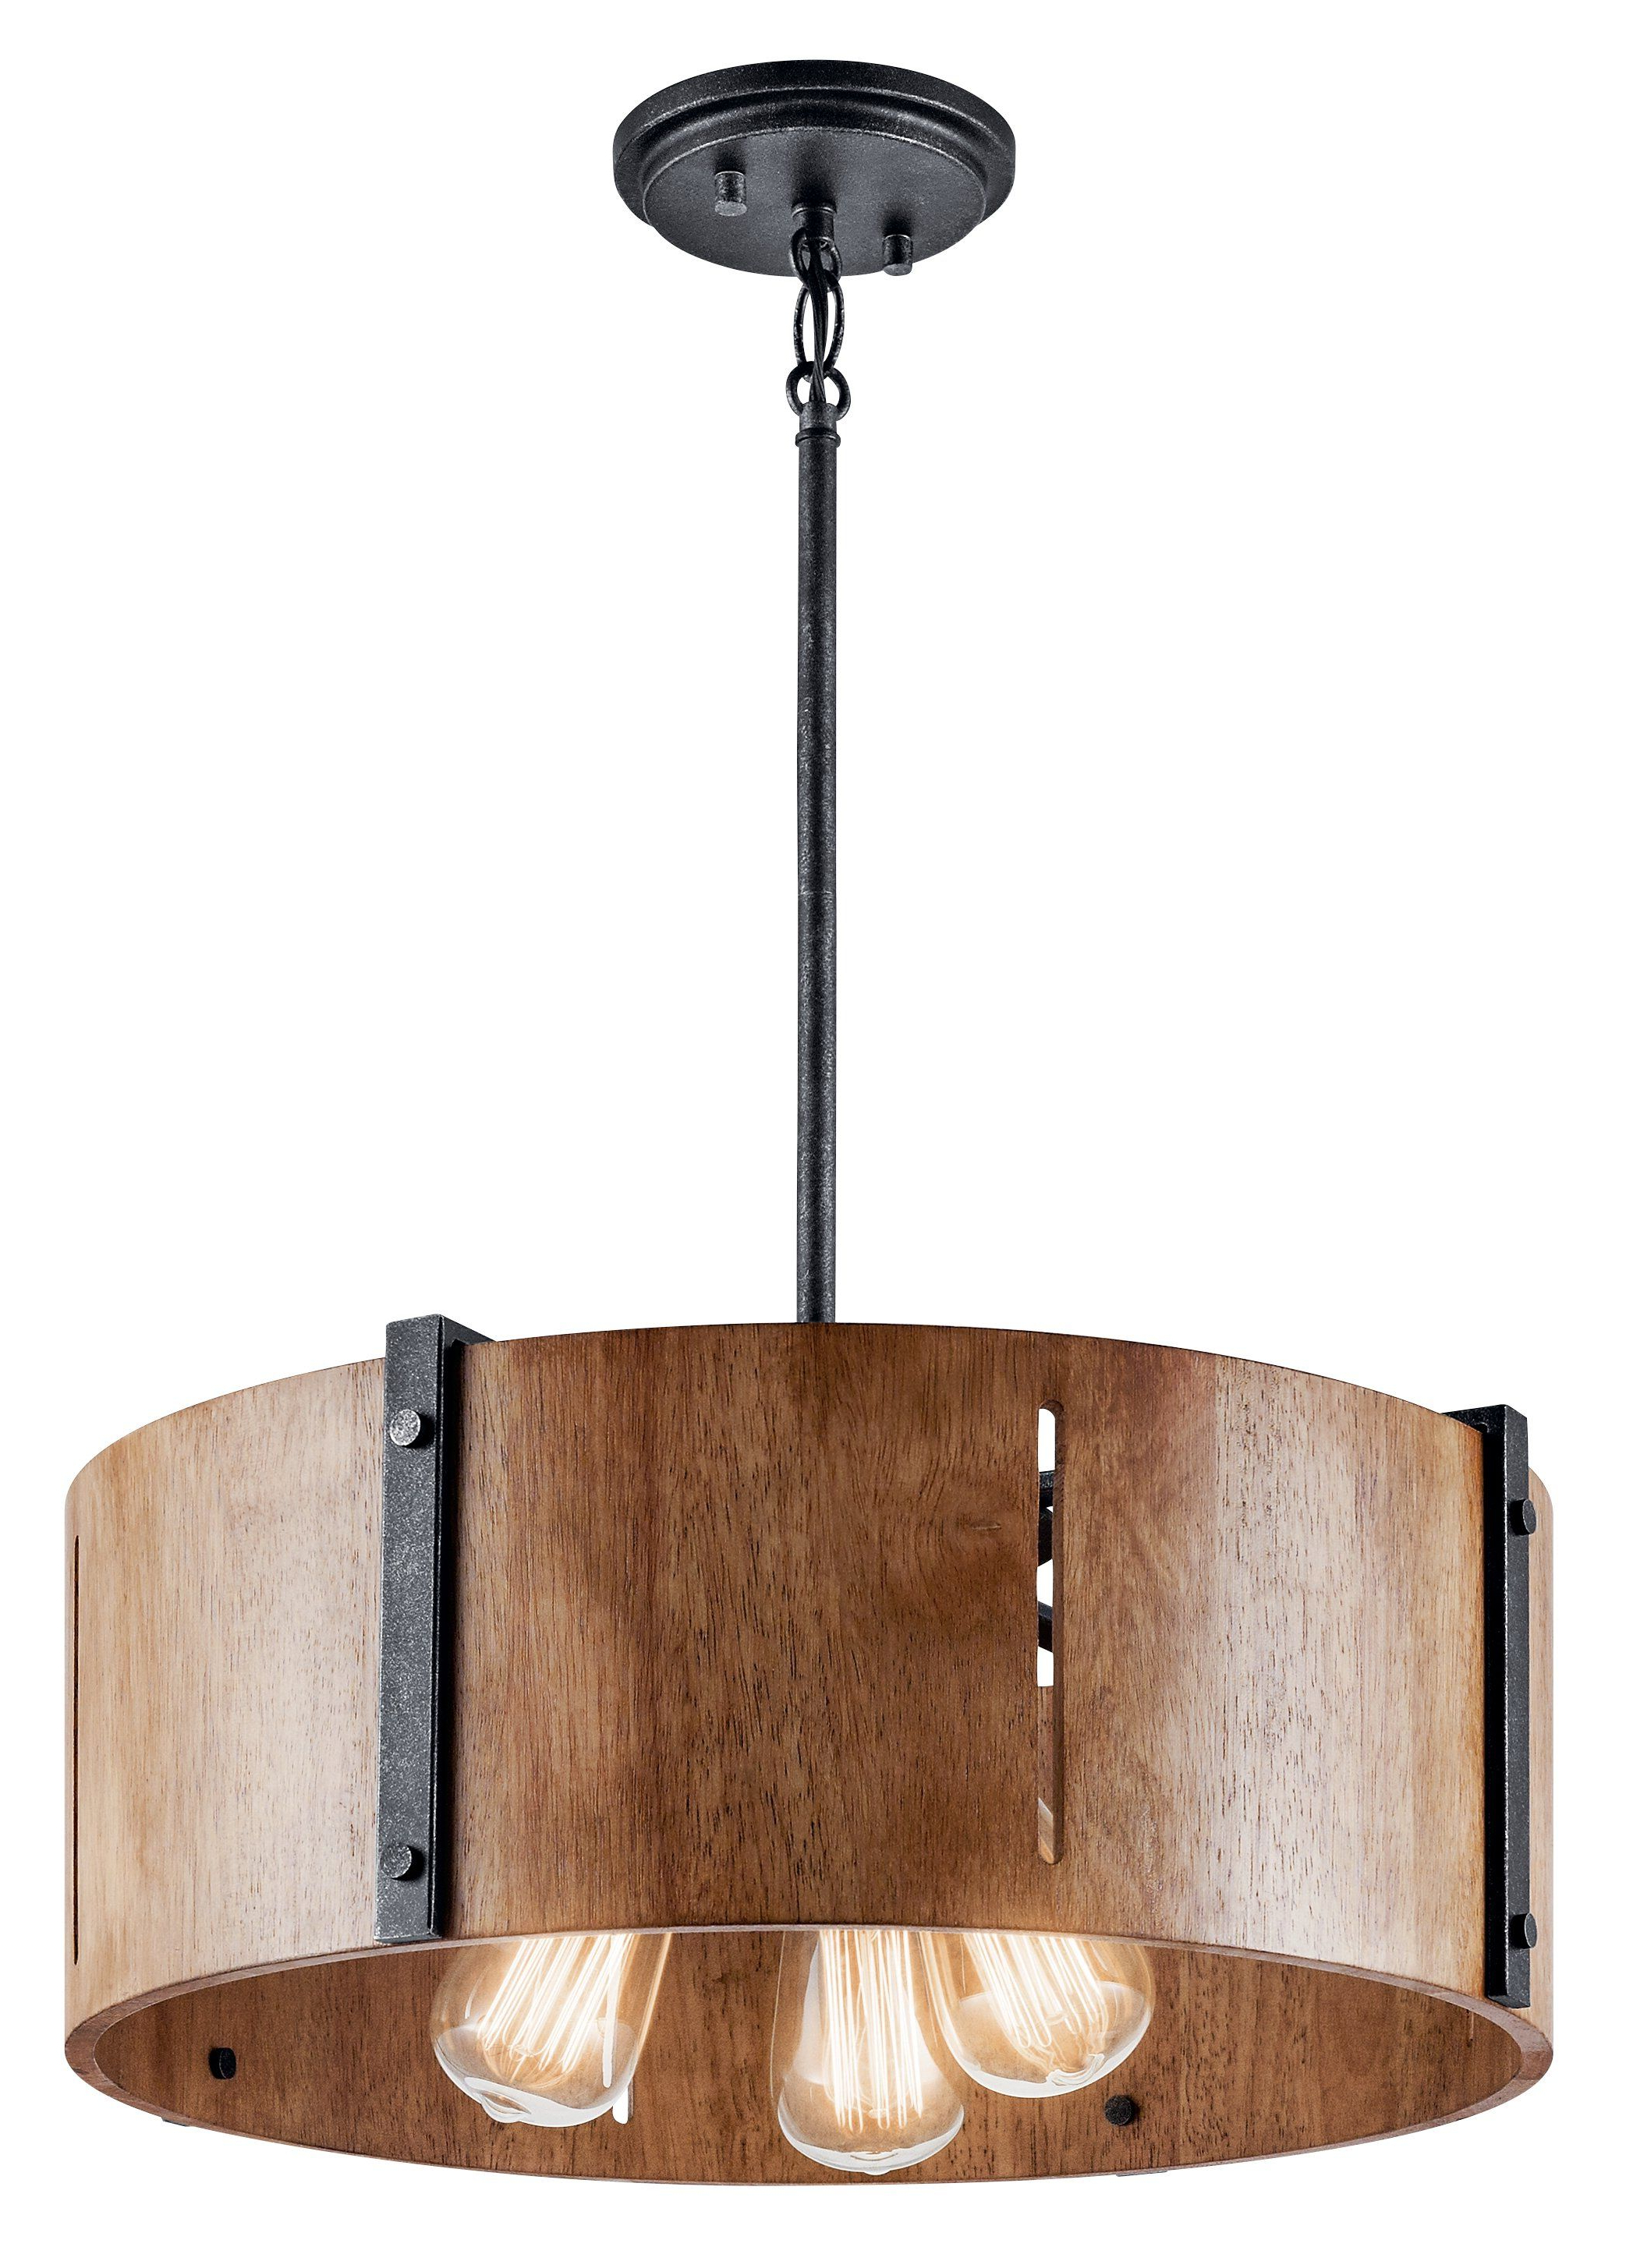 Popular Montes 3 Light Drum Chandeliers Regarding Elbur Pendant/semi Flush 3 Light – Distressed Black In 2019 (Gallery 19 of 20)